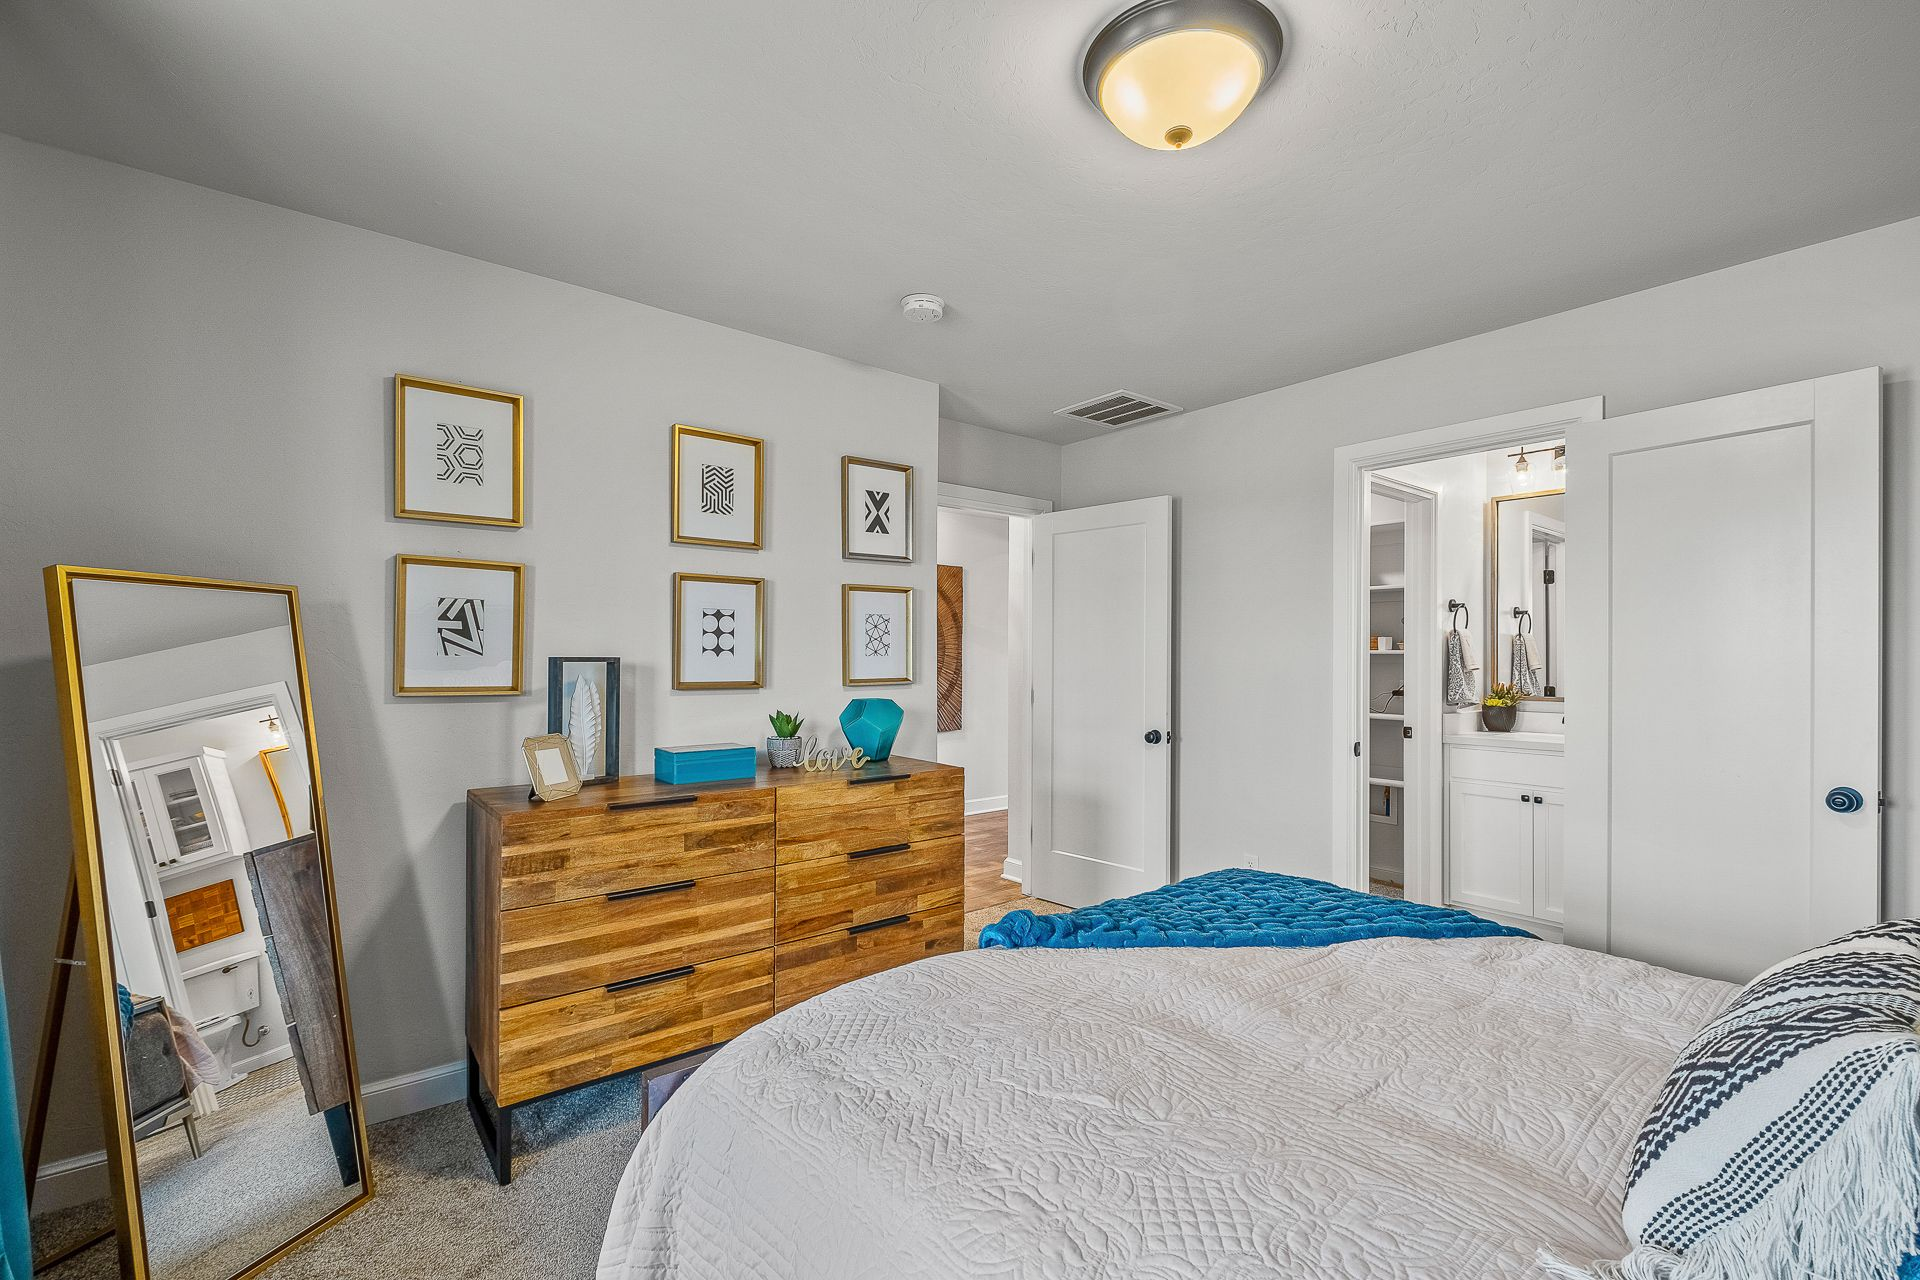 Bedroom featured in the Drummond By Ideal Homes in Oklahoma City, OK